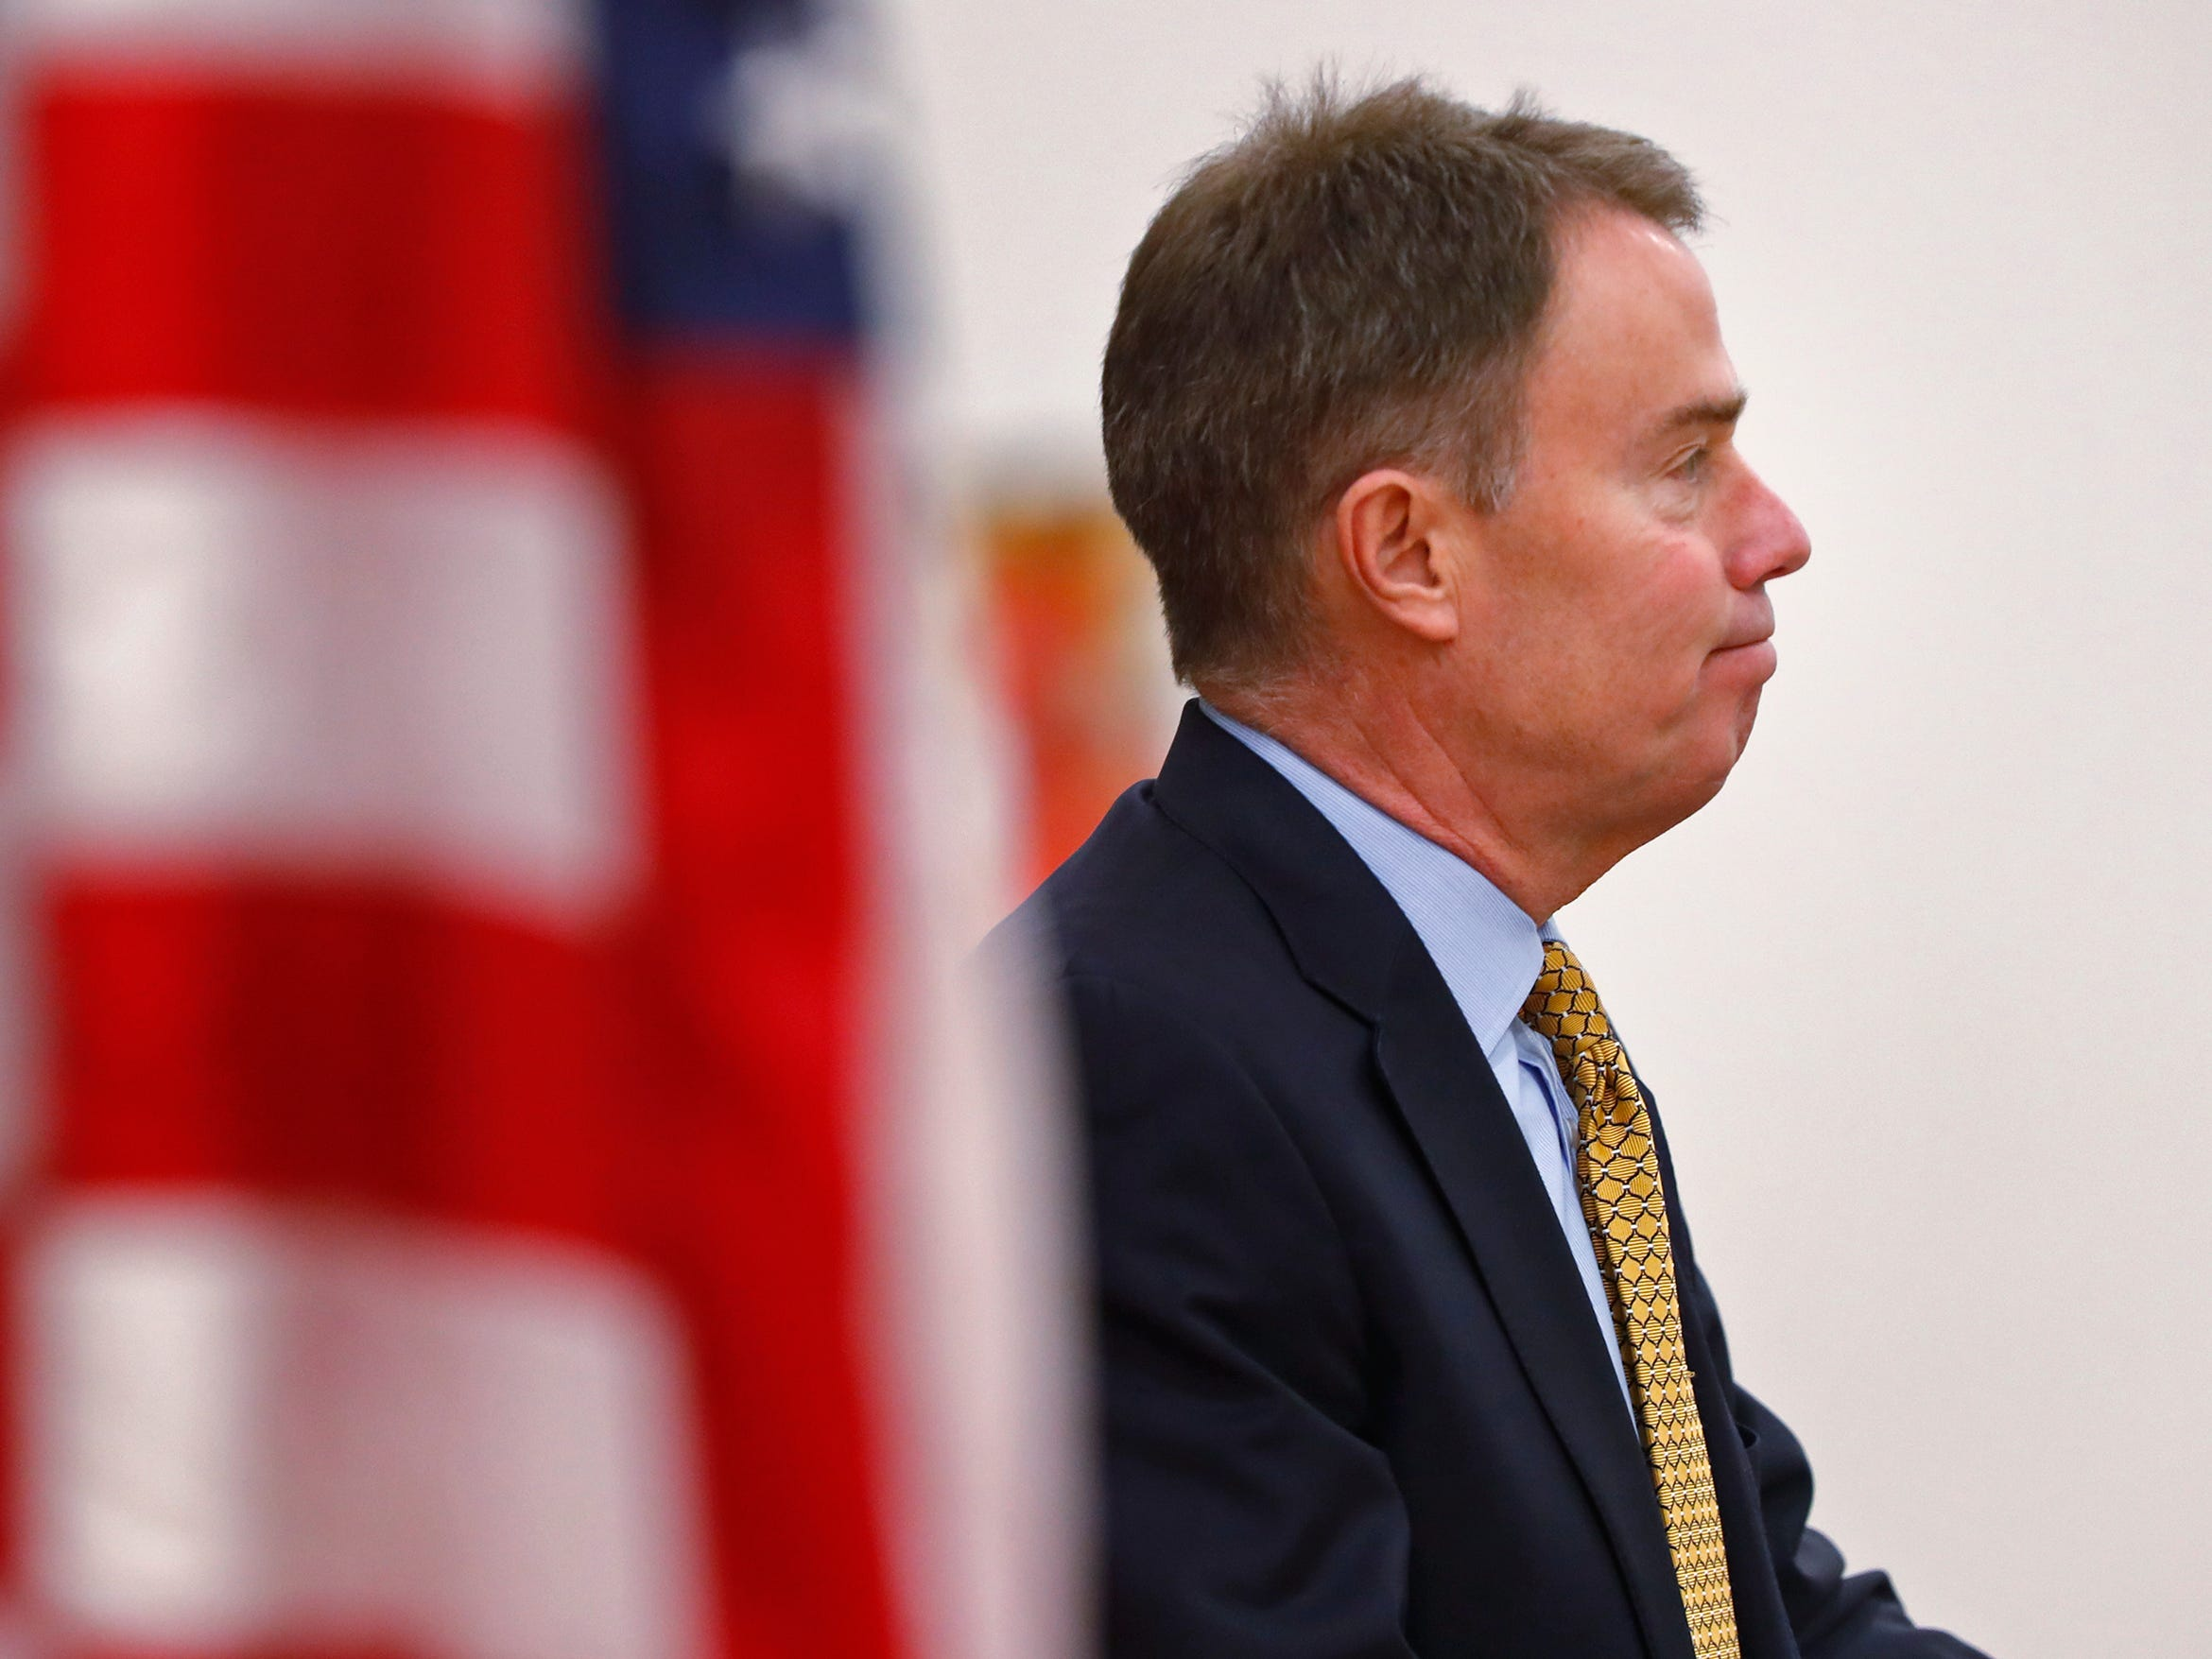 Mayor Joe Hogsett gives remarks during the Pearl Harbor Day Remembrance at Riverside High School, Friday, Dec. 7, 2018.  The former Heslar Naval Armory used to host the event to remember those who died and to honor those who survived in the Dec. 7, 1941 Japanese attack on Pearl Harbor which plunged the United States into World War II.